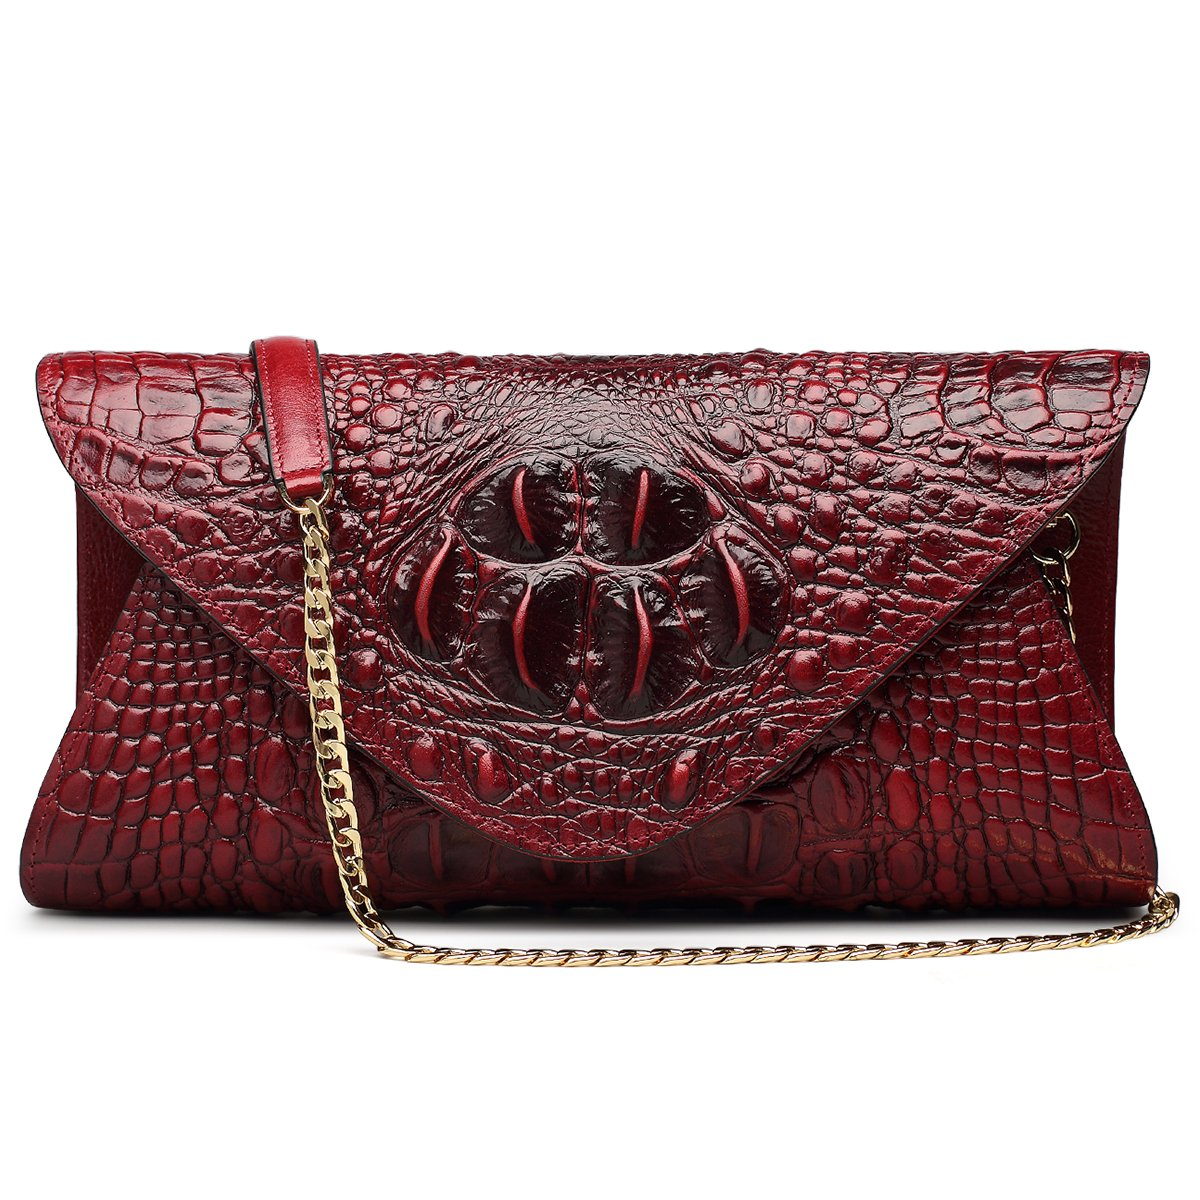 ZOOLER GLOBAL Genuine Leather Purse Clutch Crossbody Bag Crocodile Embrossed